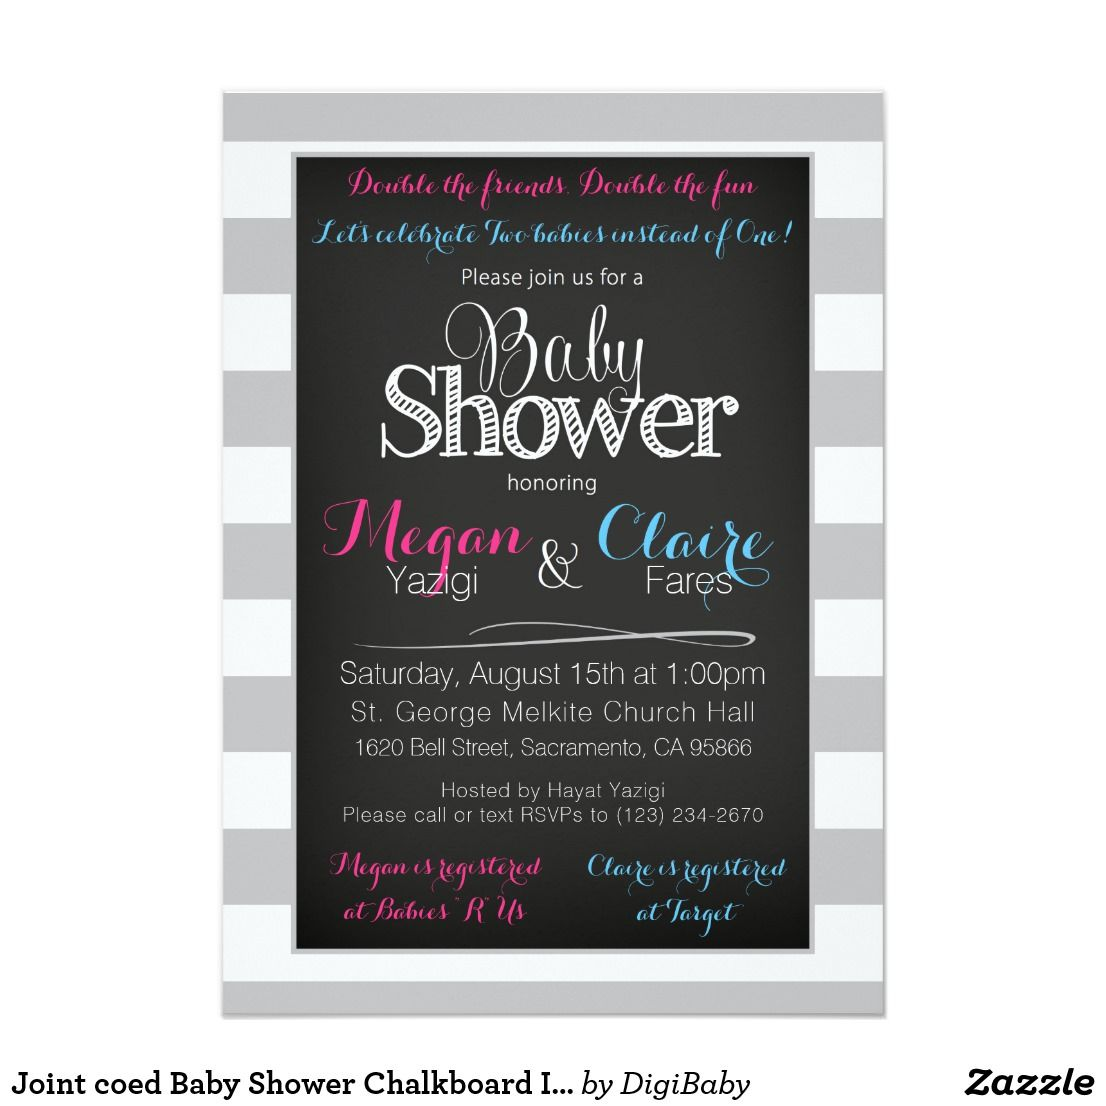 Joint Coed Shared Baby Shower Chalkboard Invitation Card Boy Or